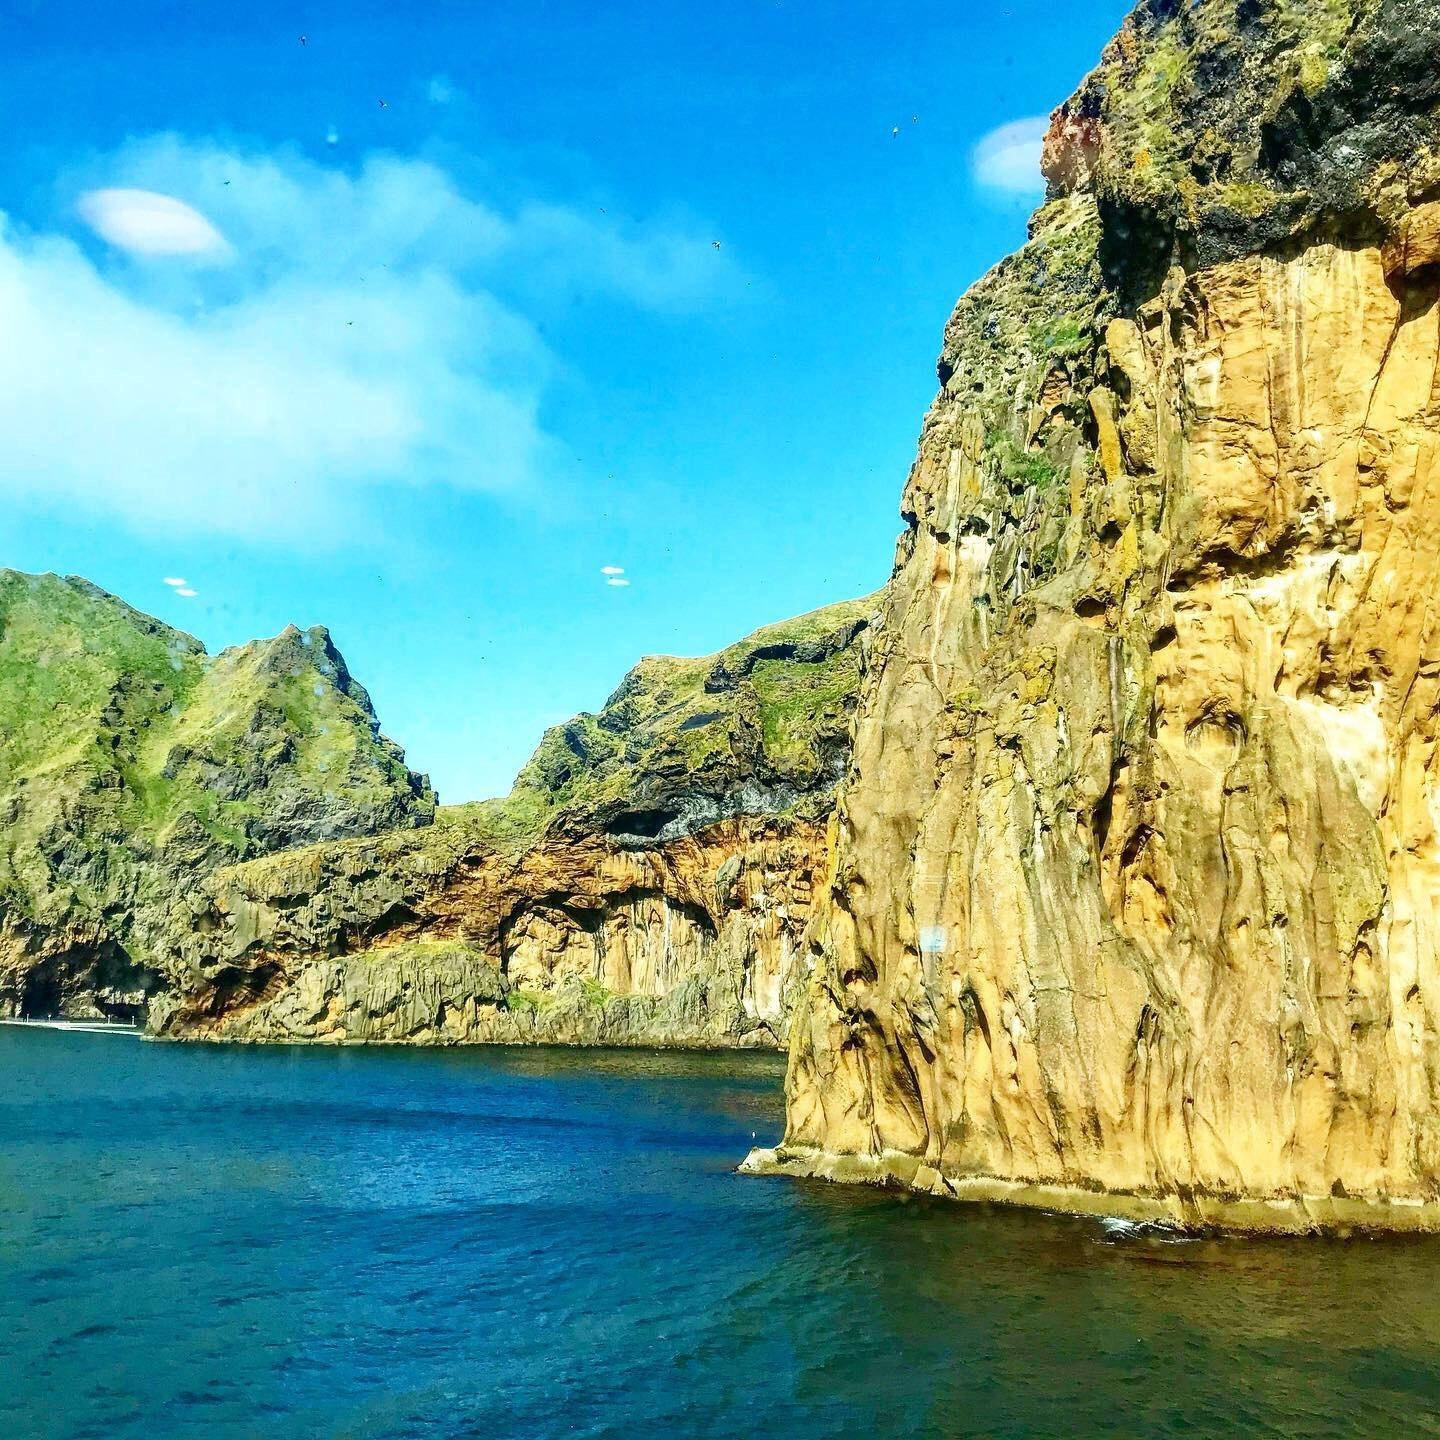 The verdant cliffs of The Westman Islands. Photo courtesy of the author.